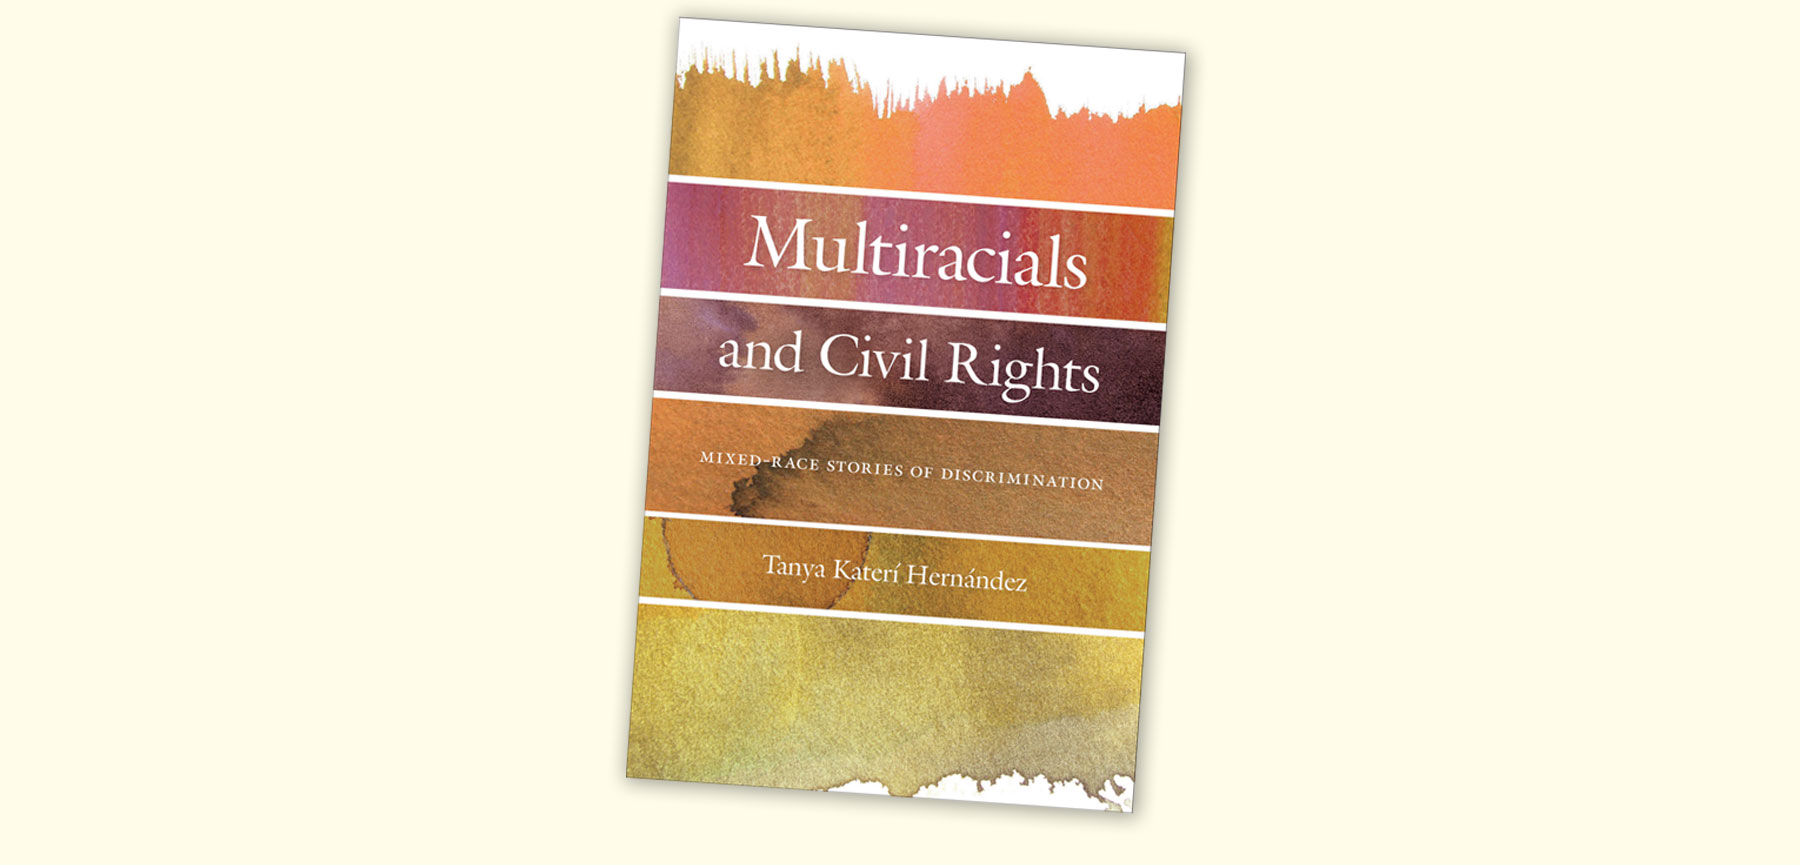 Just Published: Multiracials and Civil Rights by Tanya Hernandez